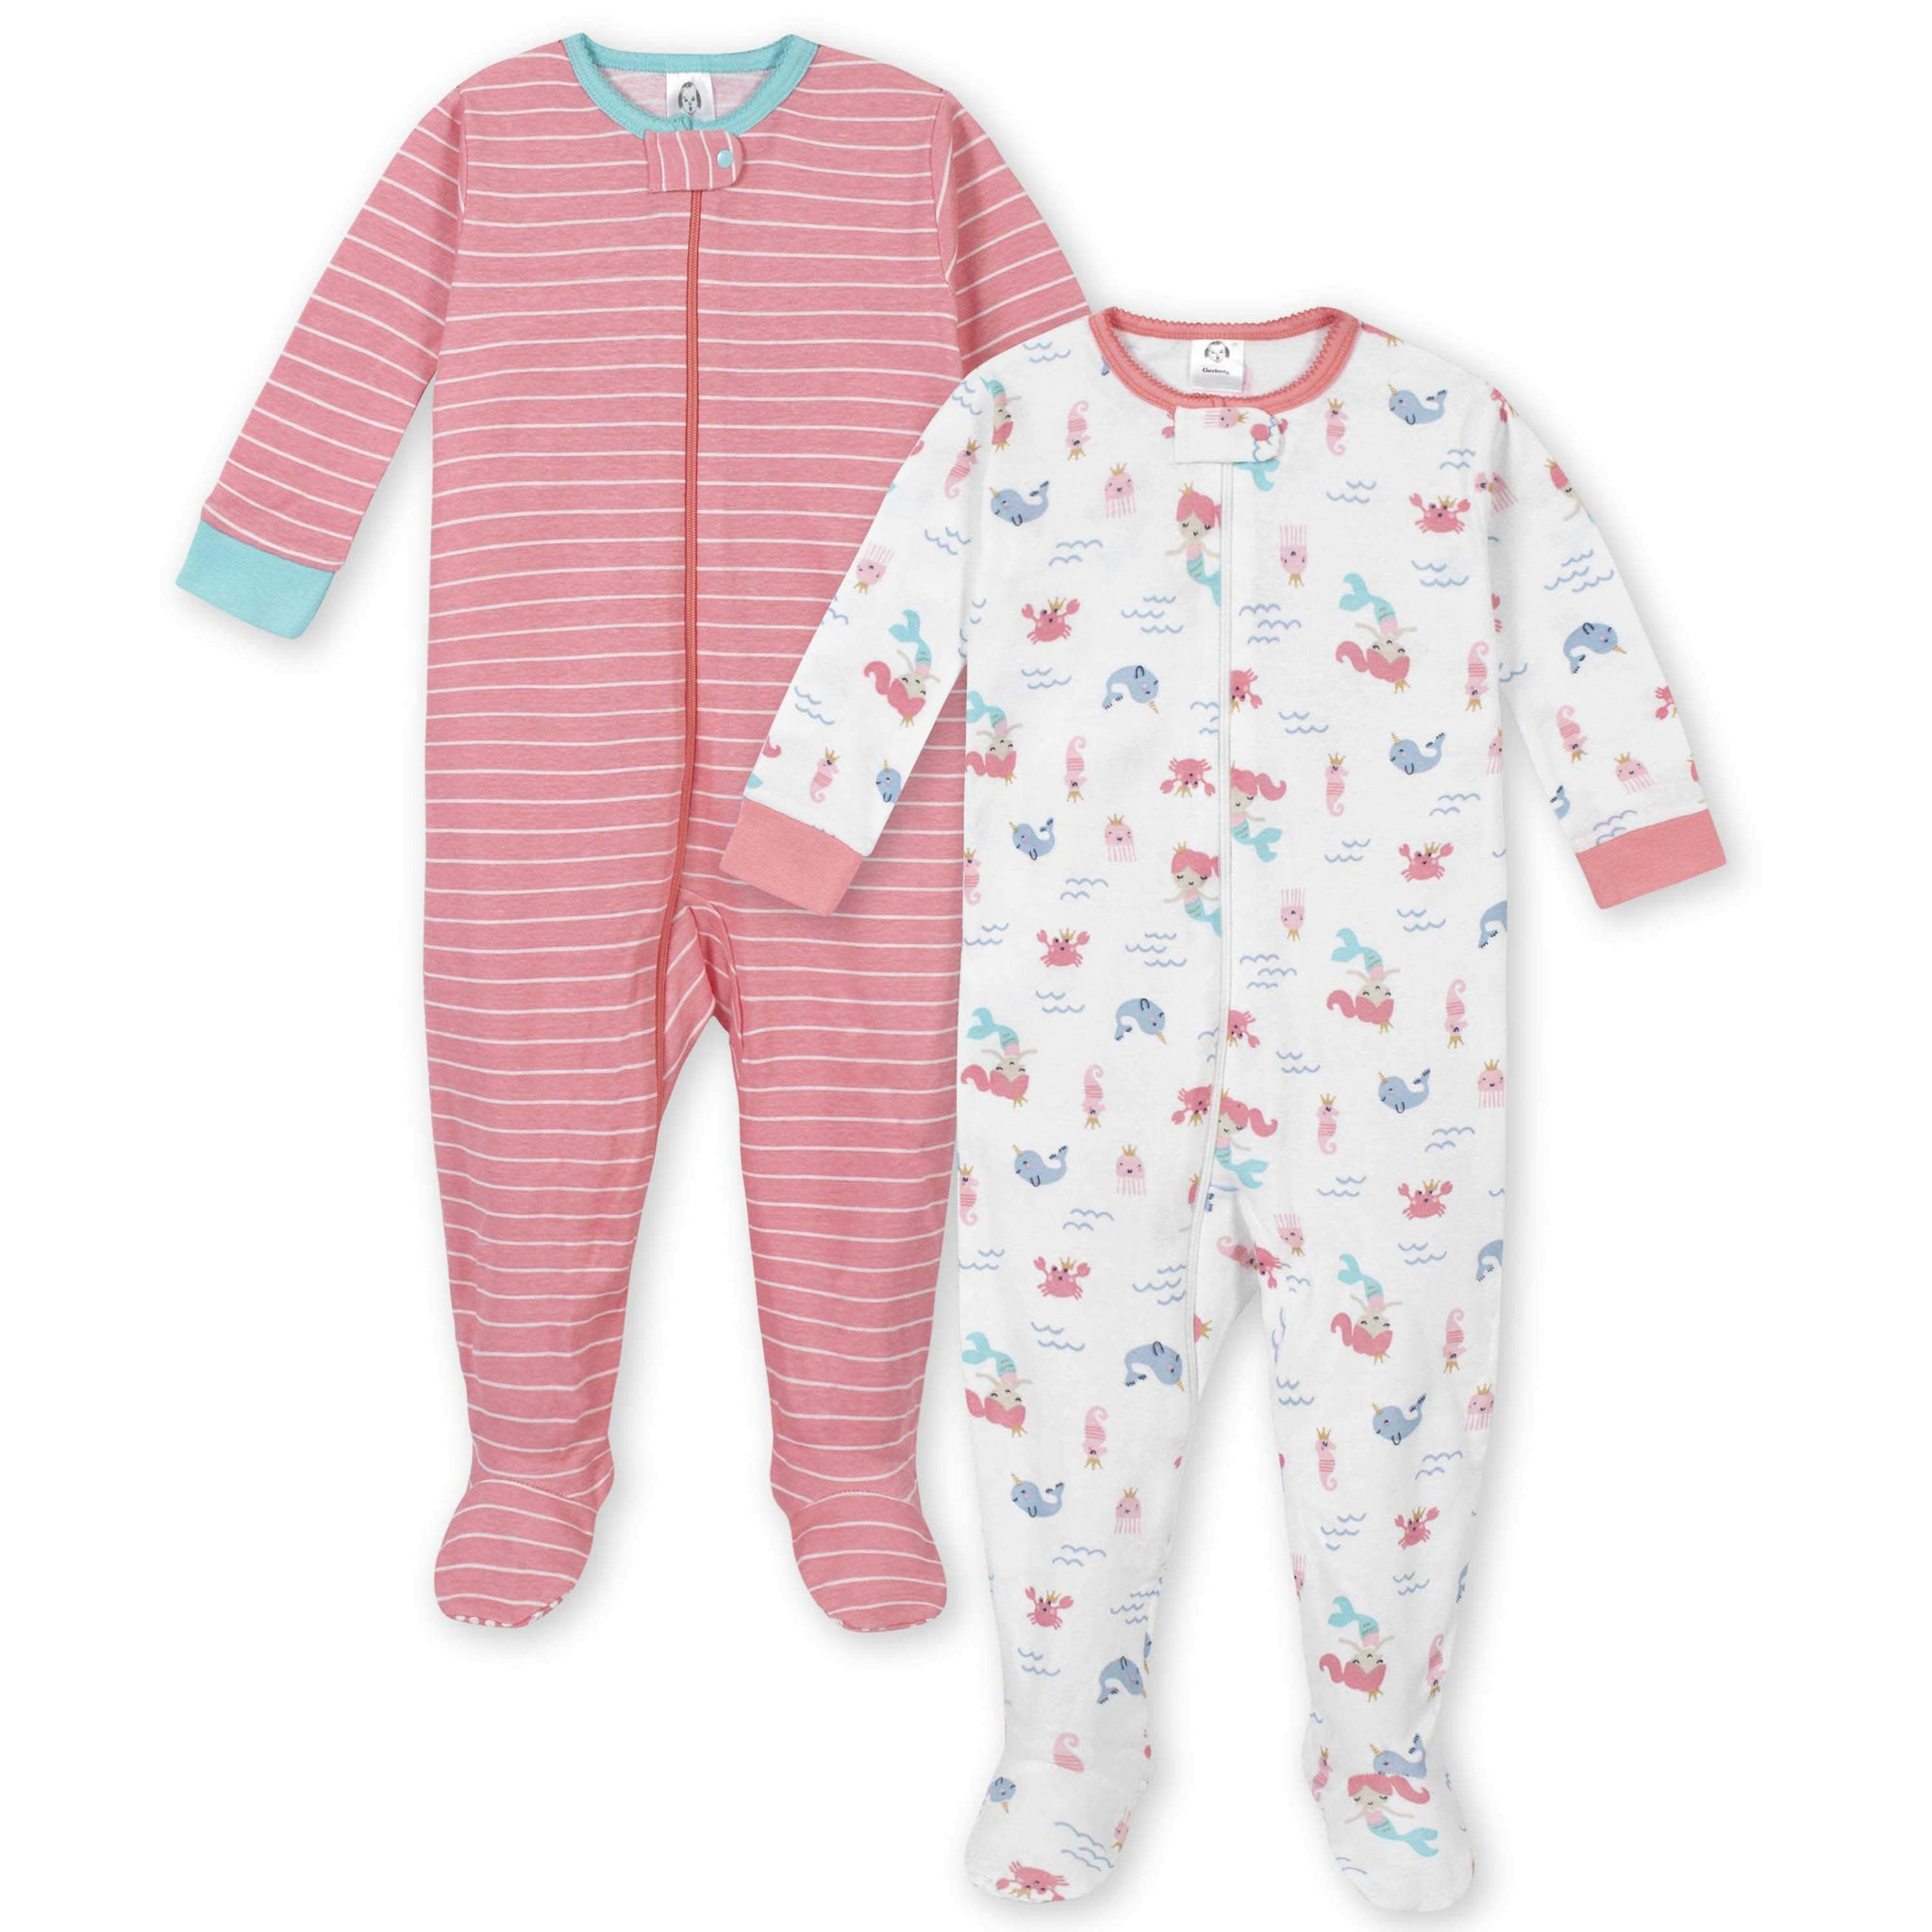 2-Pack Girls Mermaid Footed Unionsuit